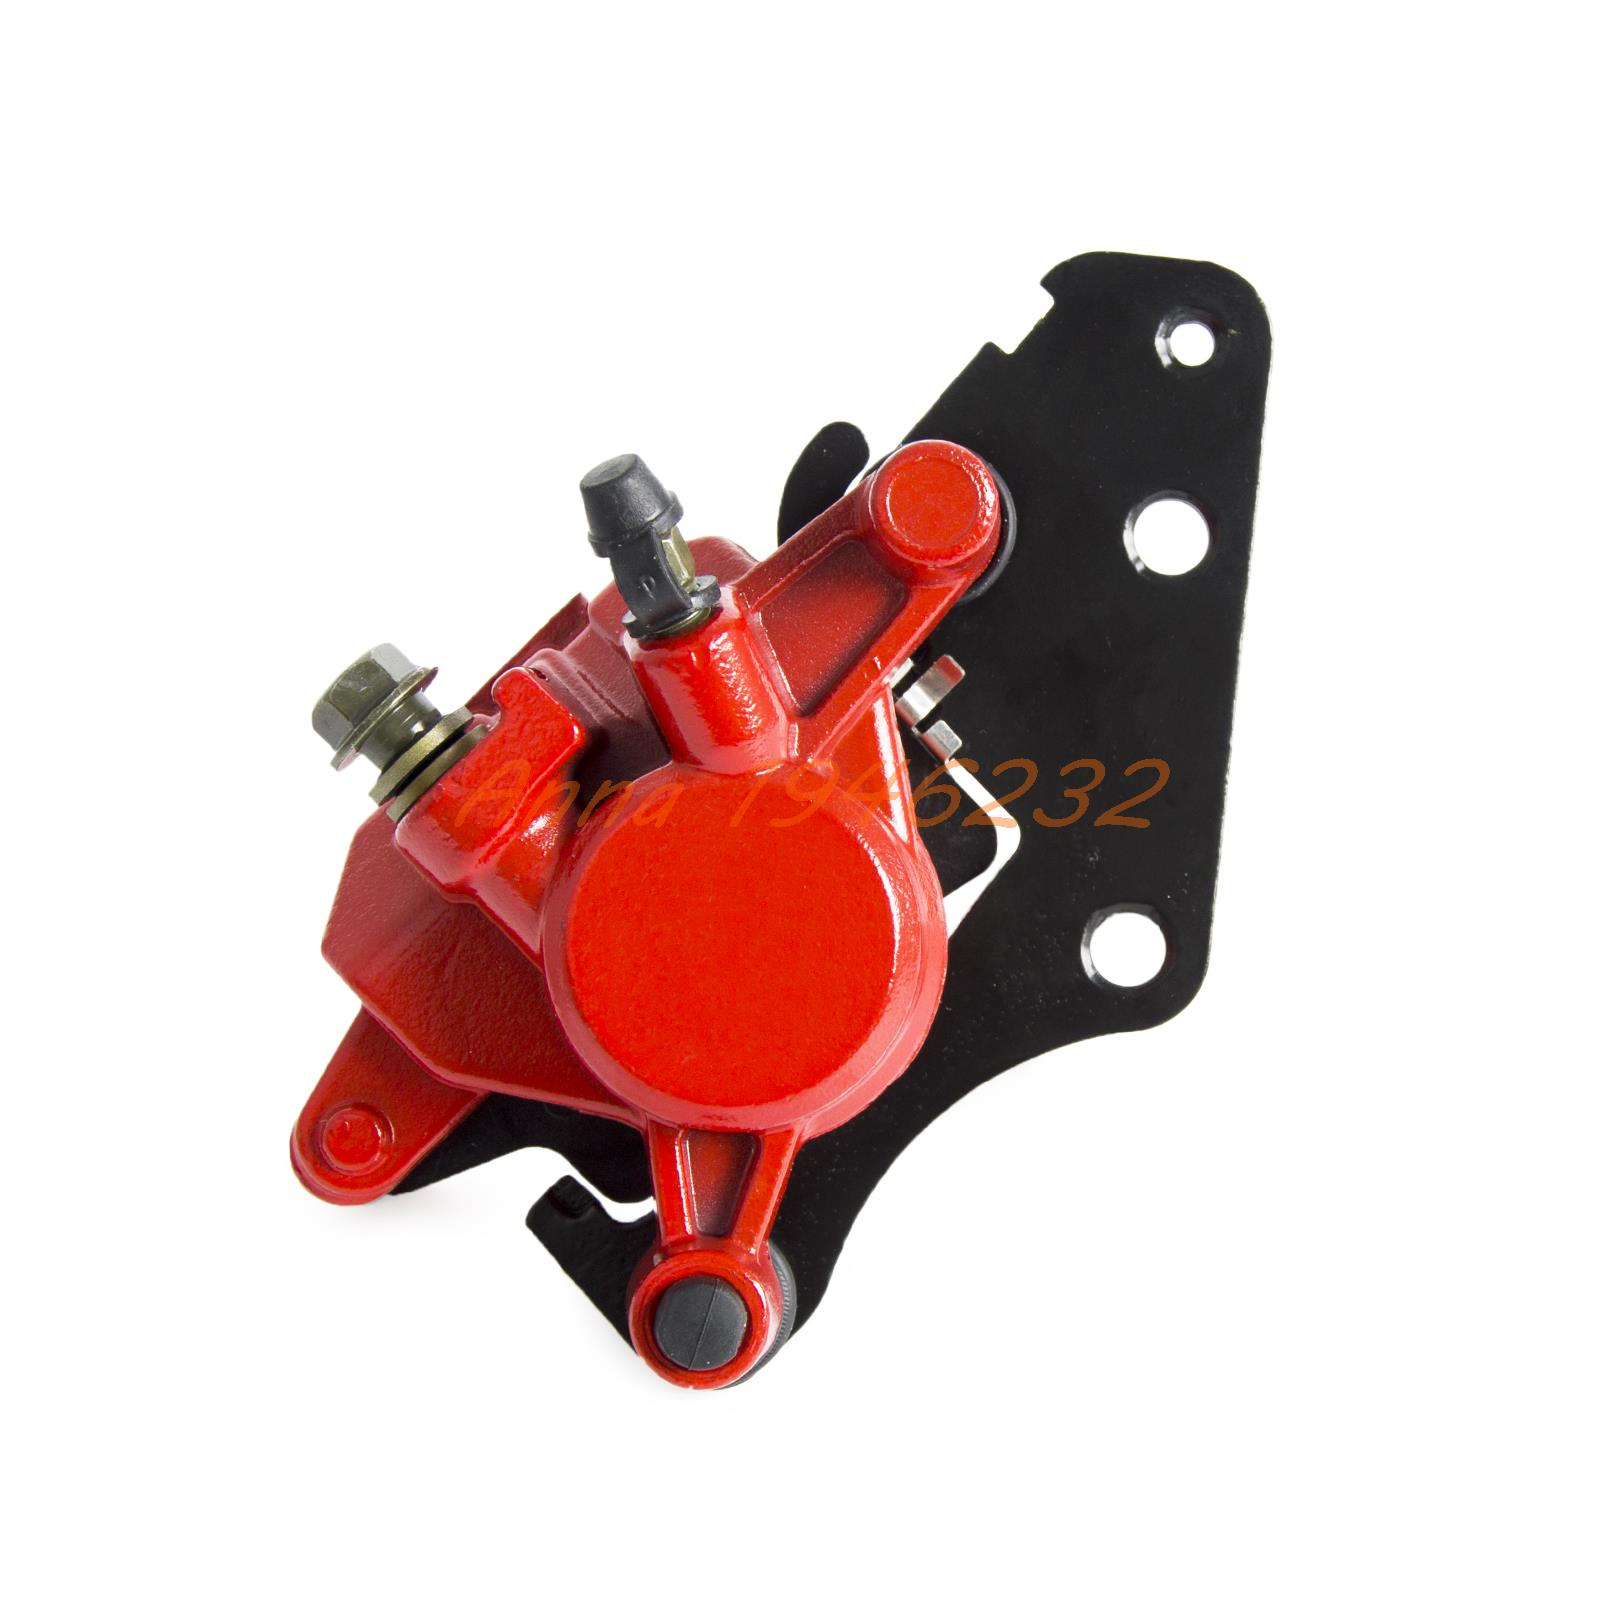 Brake Caliper Assy With Pads For Yamaha XC125E 32P-F580U-11-00 r1 concepts a42 752215 premier series brake caliper with brake pads